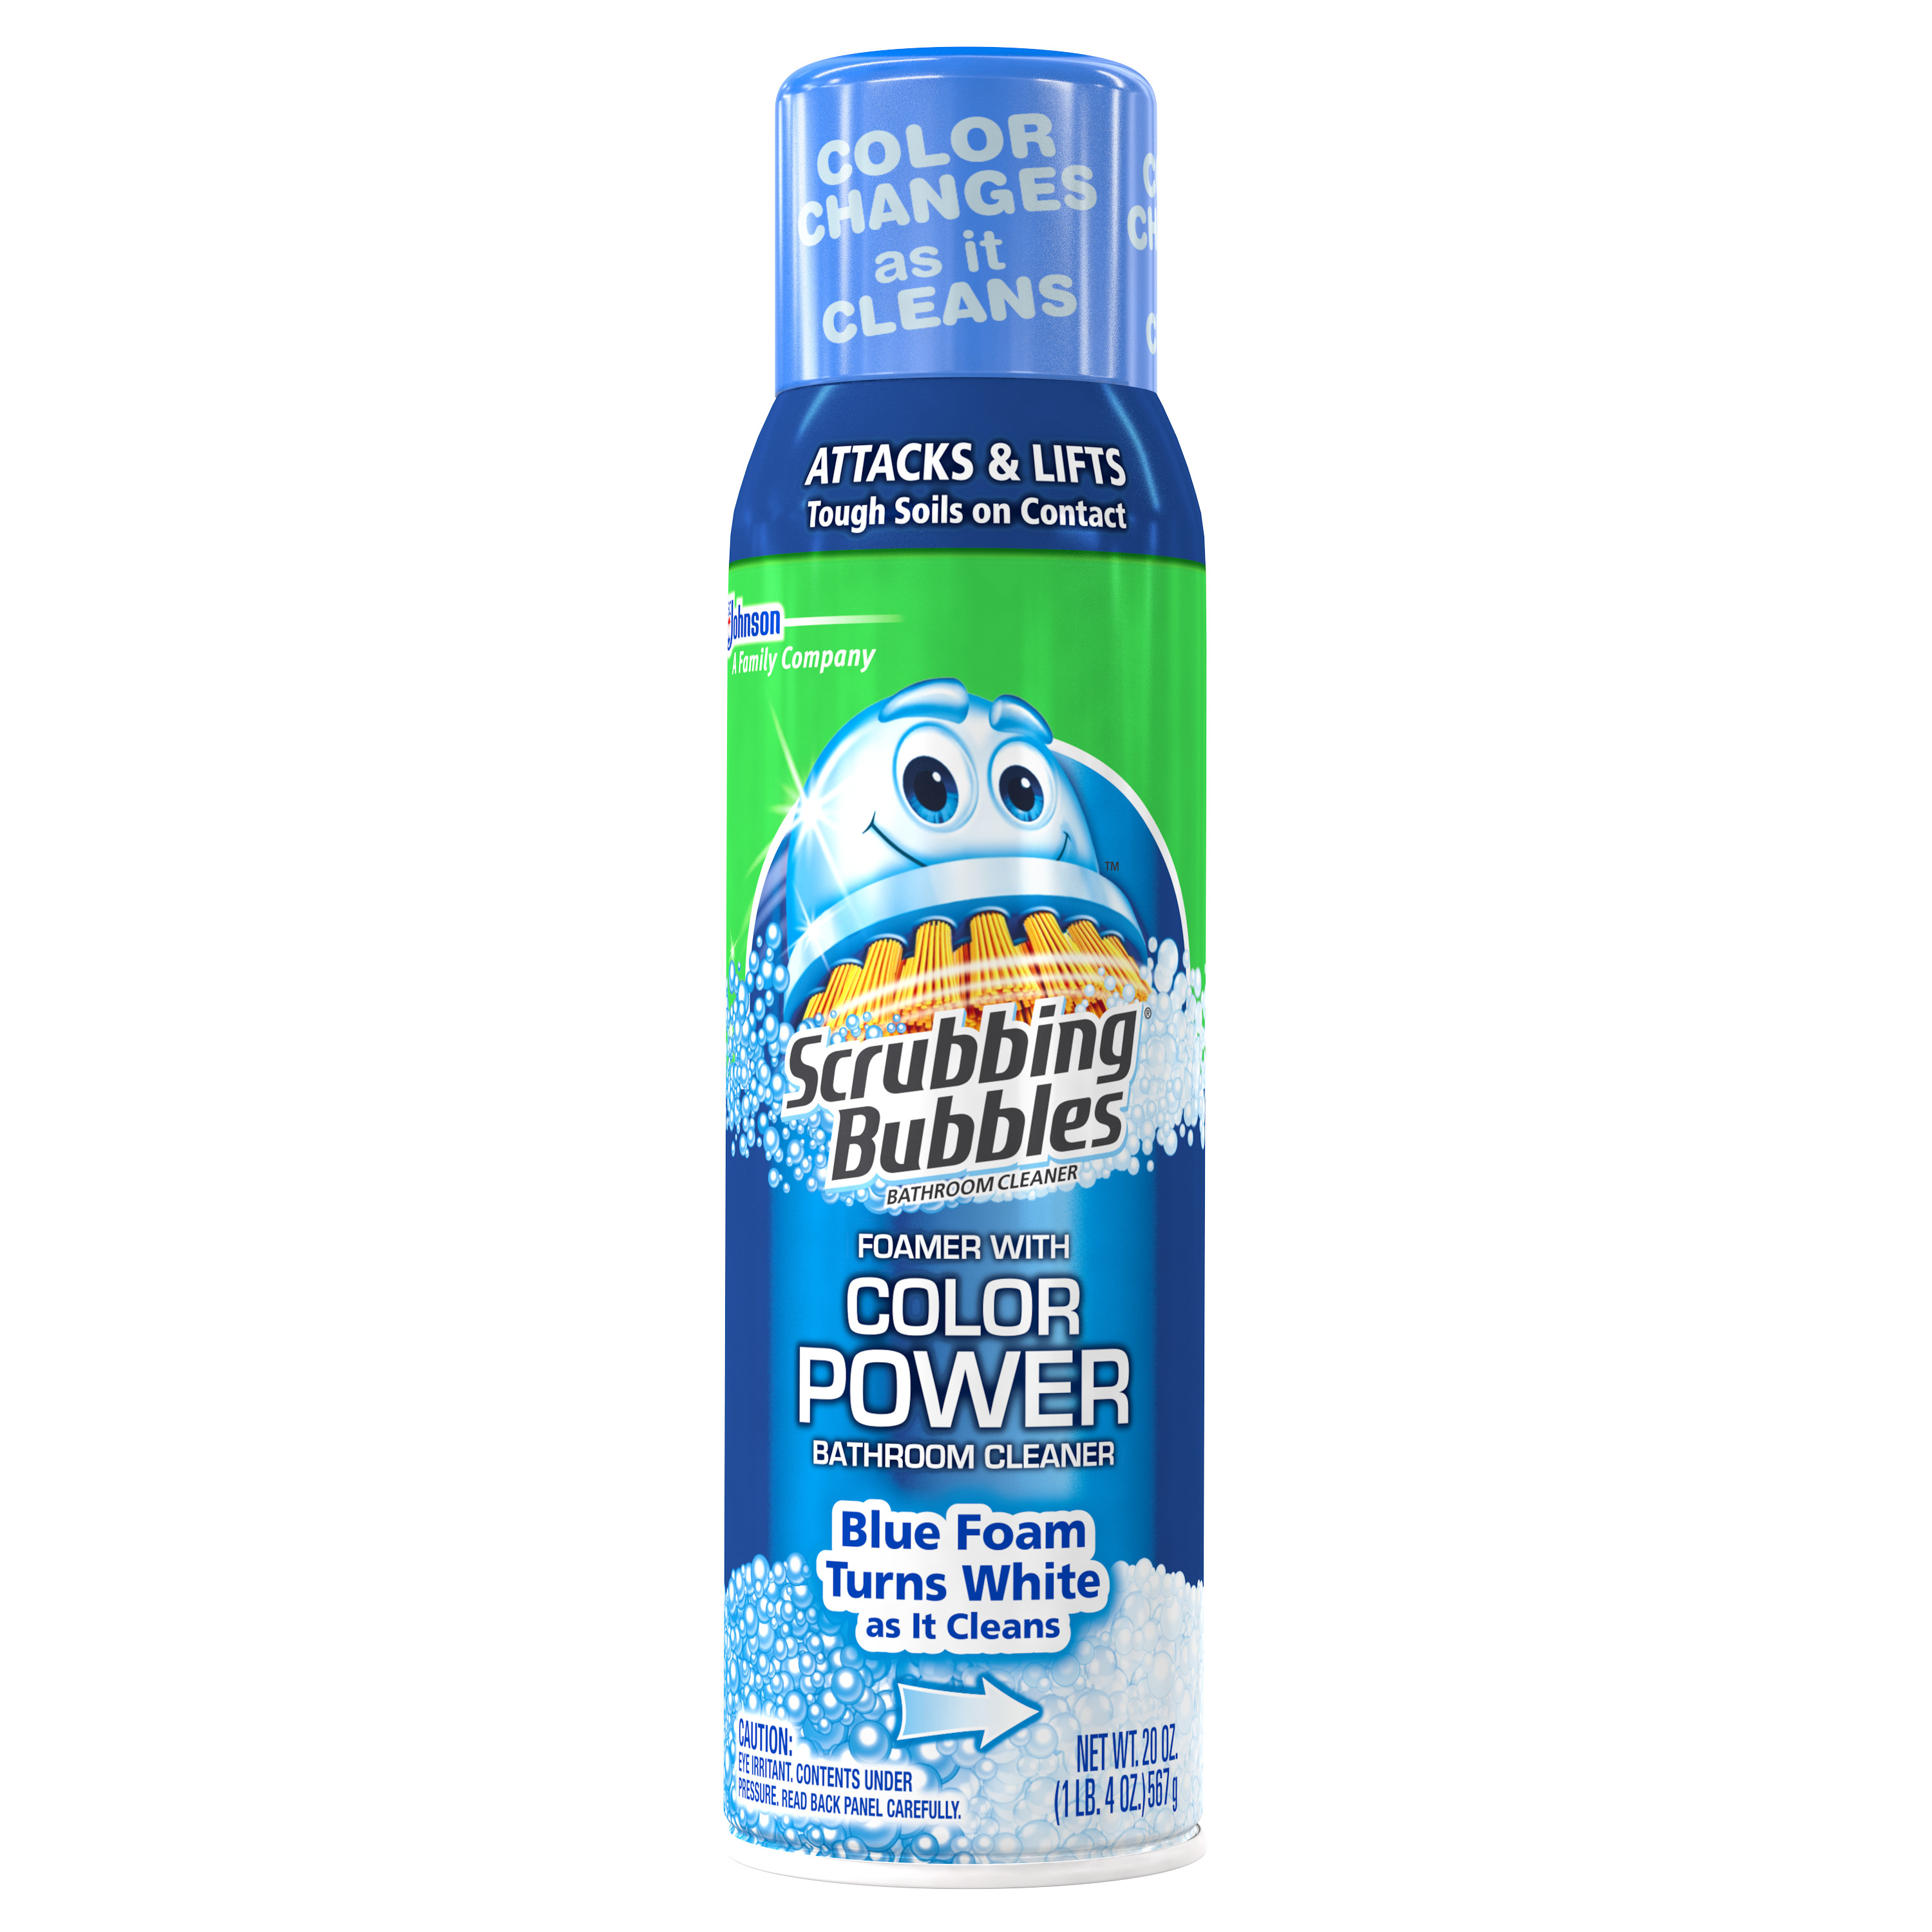 Scrubbing Bubbles Aerosol Bathroom Cleaner with Color Power Technology 20oz